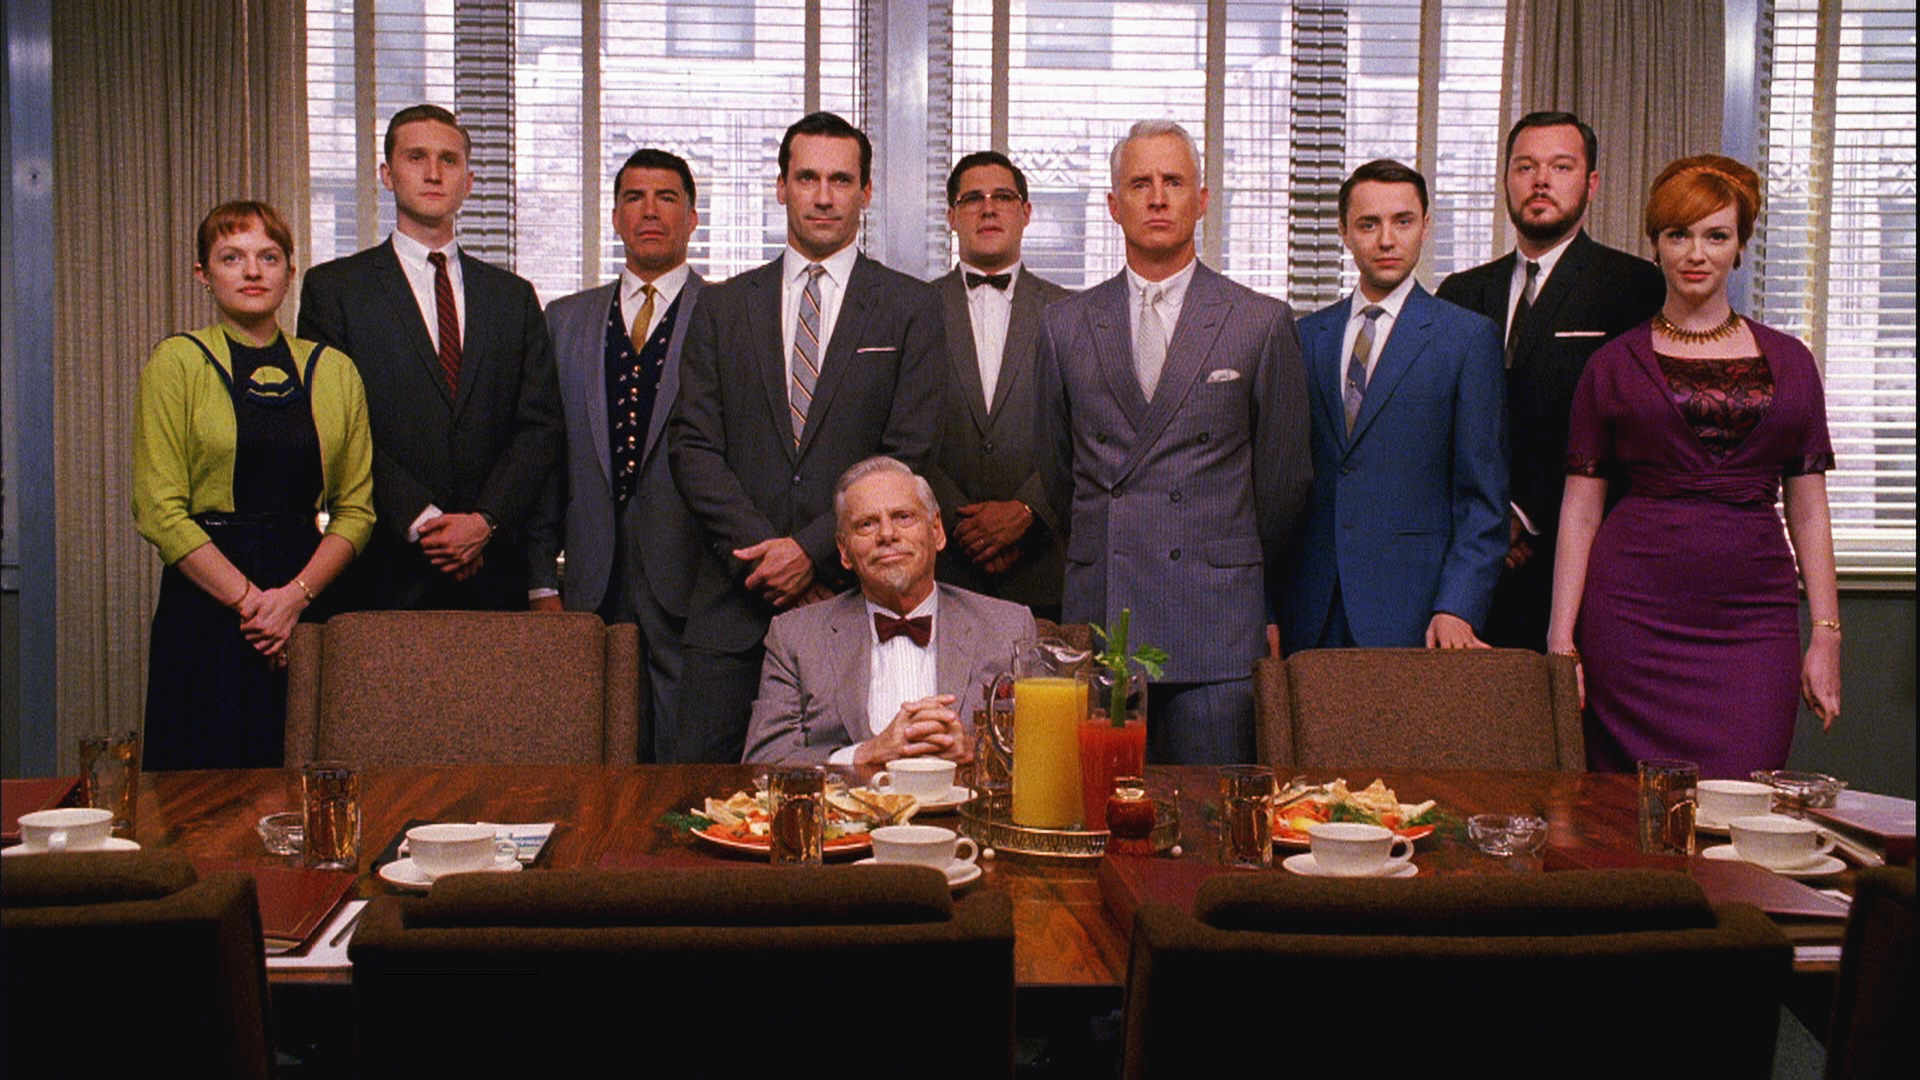 mad men about amc trailer nostalgia mad men season 7